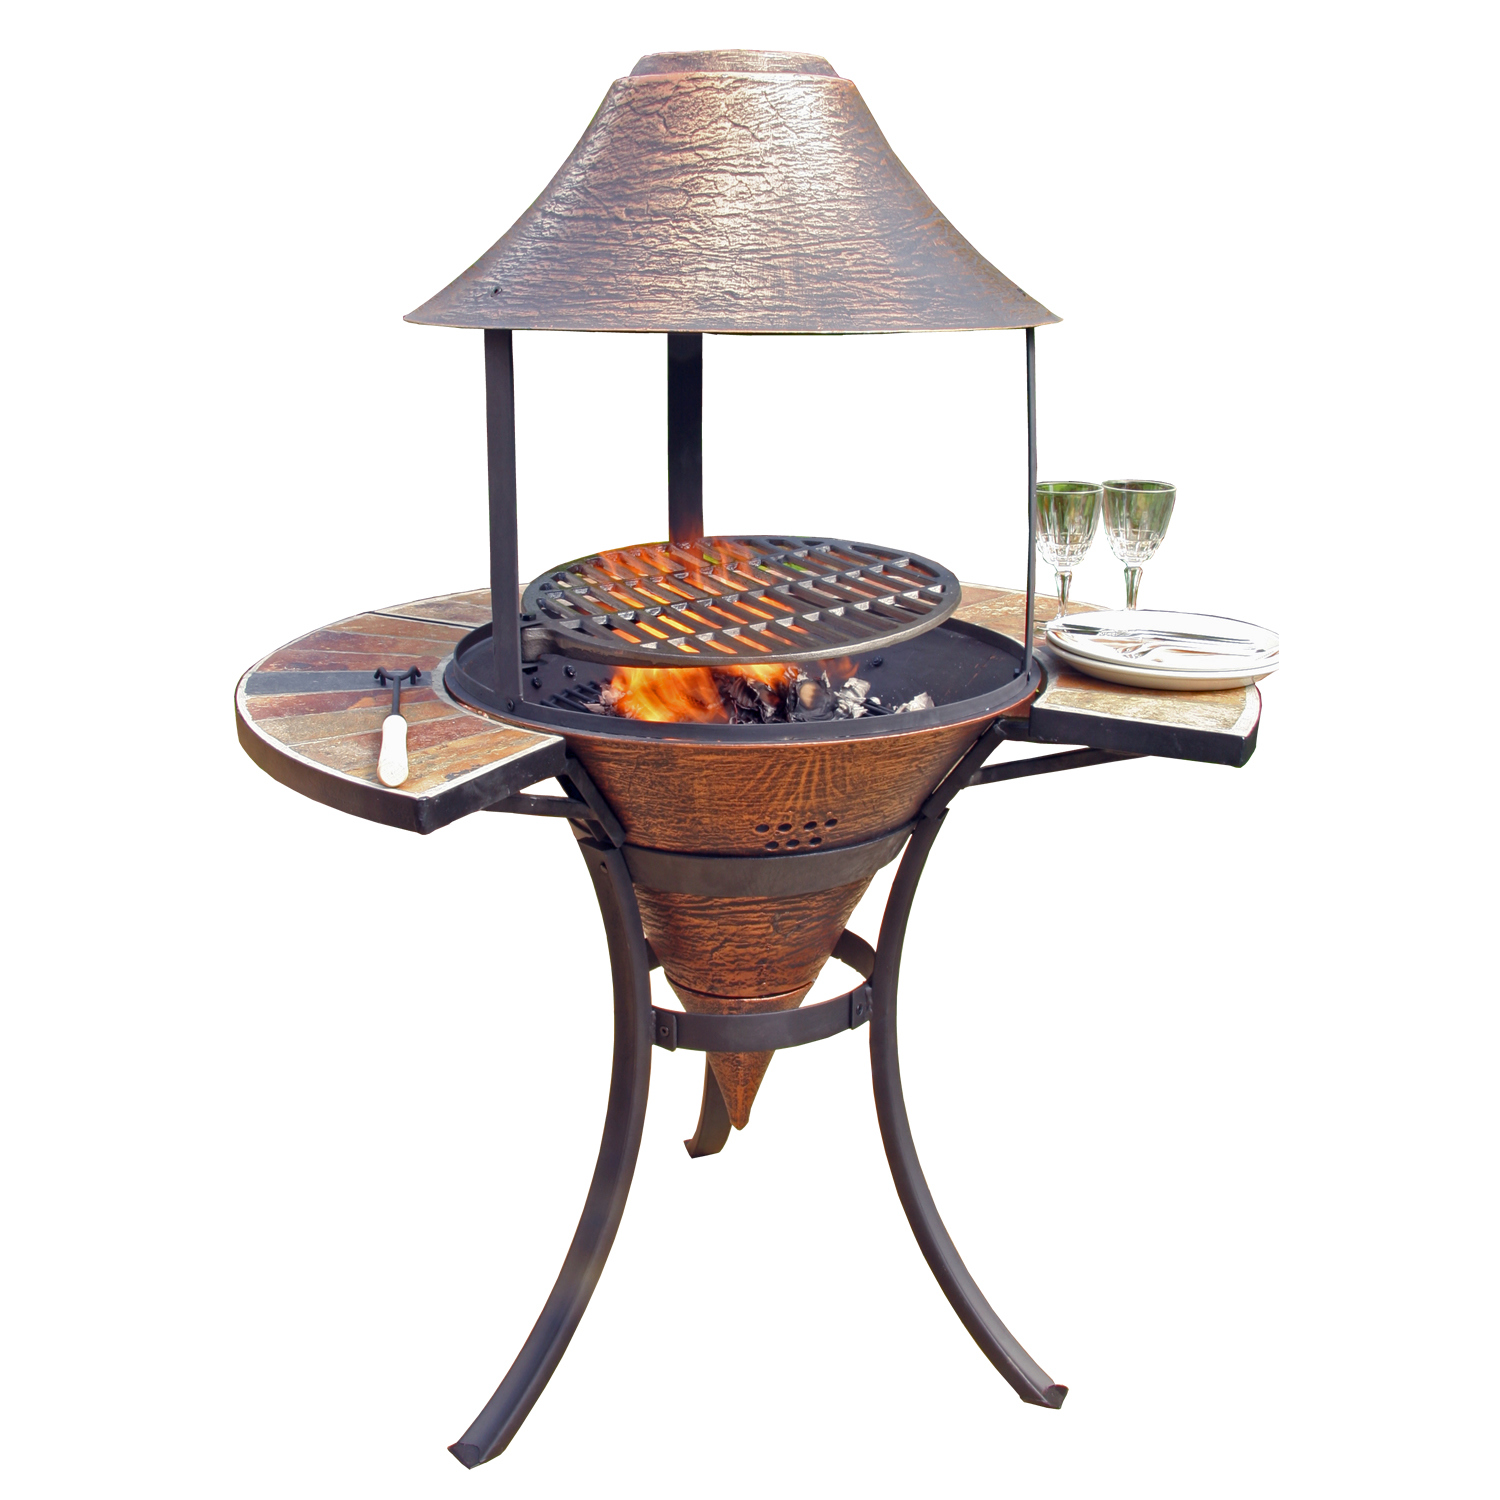 Wonderful Chiminea Outdoor Fireplace For Patio Furniture Ideas: Charming Corona Cast Iron Barbecue Chiminea For Outdoor Furniture Ideas